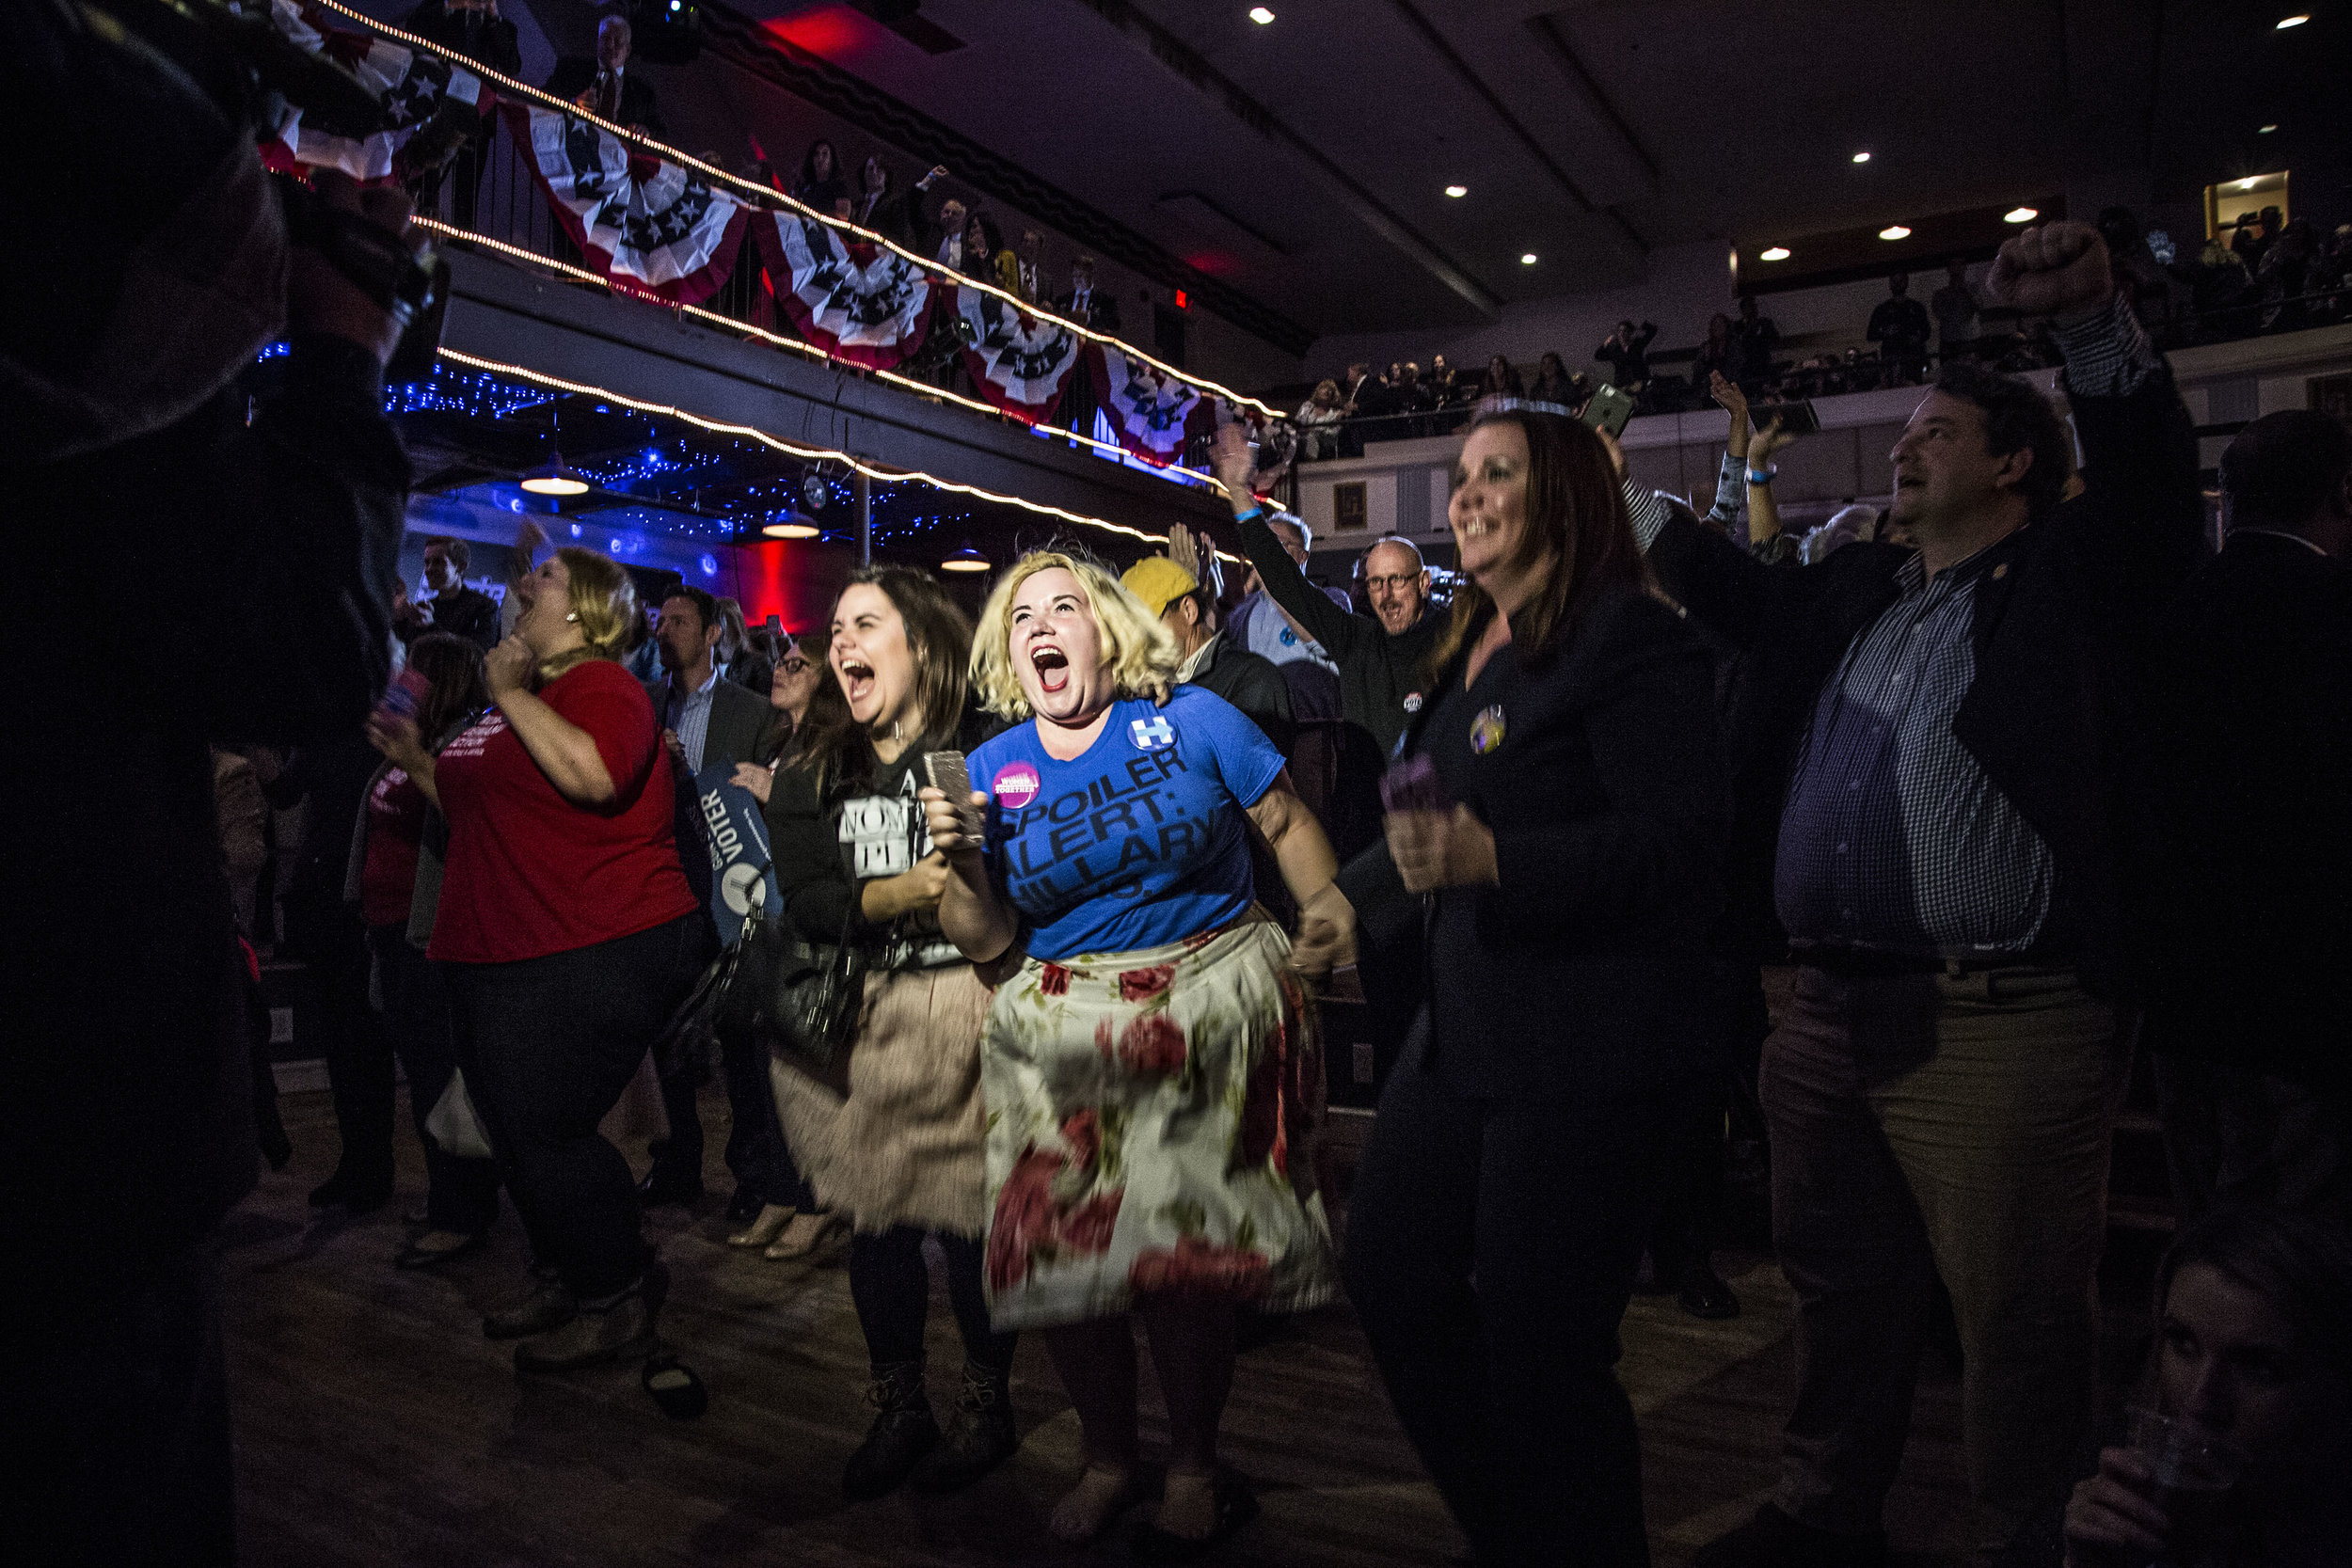 Hillary Clinton supporters react to early election results during Governor Terry McAuliffe's election night watch party in Falls Church, Va.